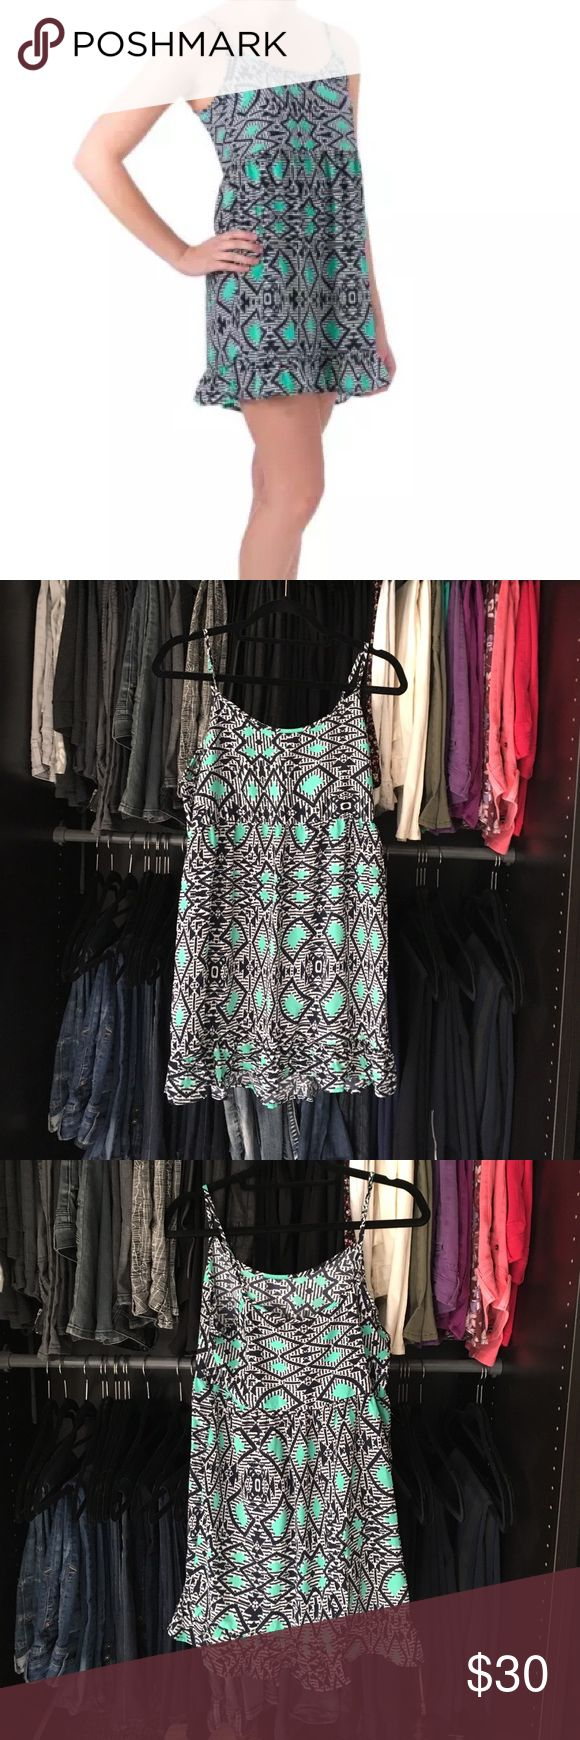 """Aztec Summer Dress The fun Aztec print we can't get enough of comes to you in a super soft navy, white, and teal dress.  Adjustable straps. Flowy and comfy. 100% poly. XS- 33""""L, 17.5""""B, 16""""W, S- 34.5""""L, 19""""B, 16.5""""W, L- 34.25""""L, 19""""B, 16""""W.  Price firm unless bundled.  ✅AVAILABLE 🚫TRADES 🚫HOLDS 💰SAVE 15% 3+ ITEMS 🆓 ITEMS  AVAILABLE 🐾 CRUELTY FREE one clothing Dresses"""